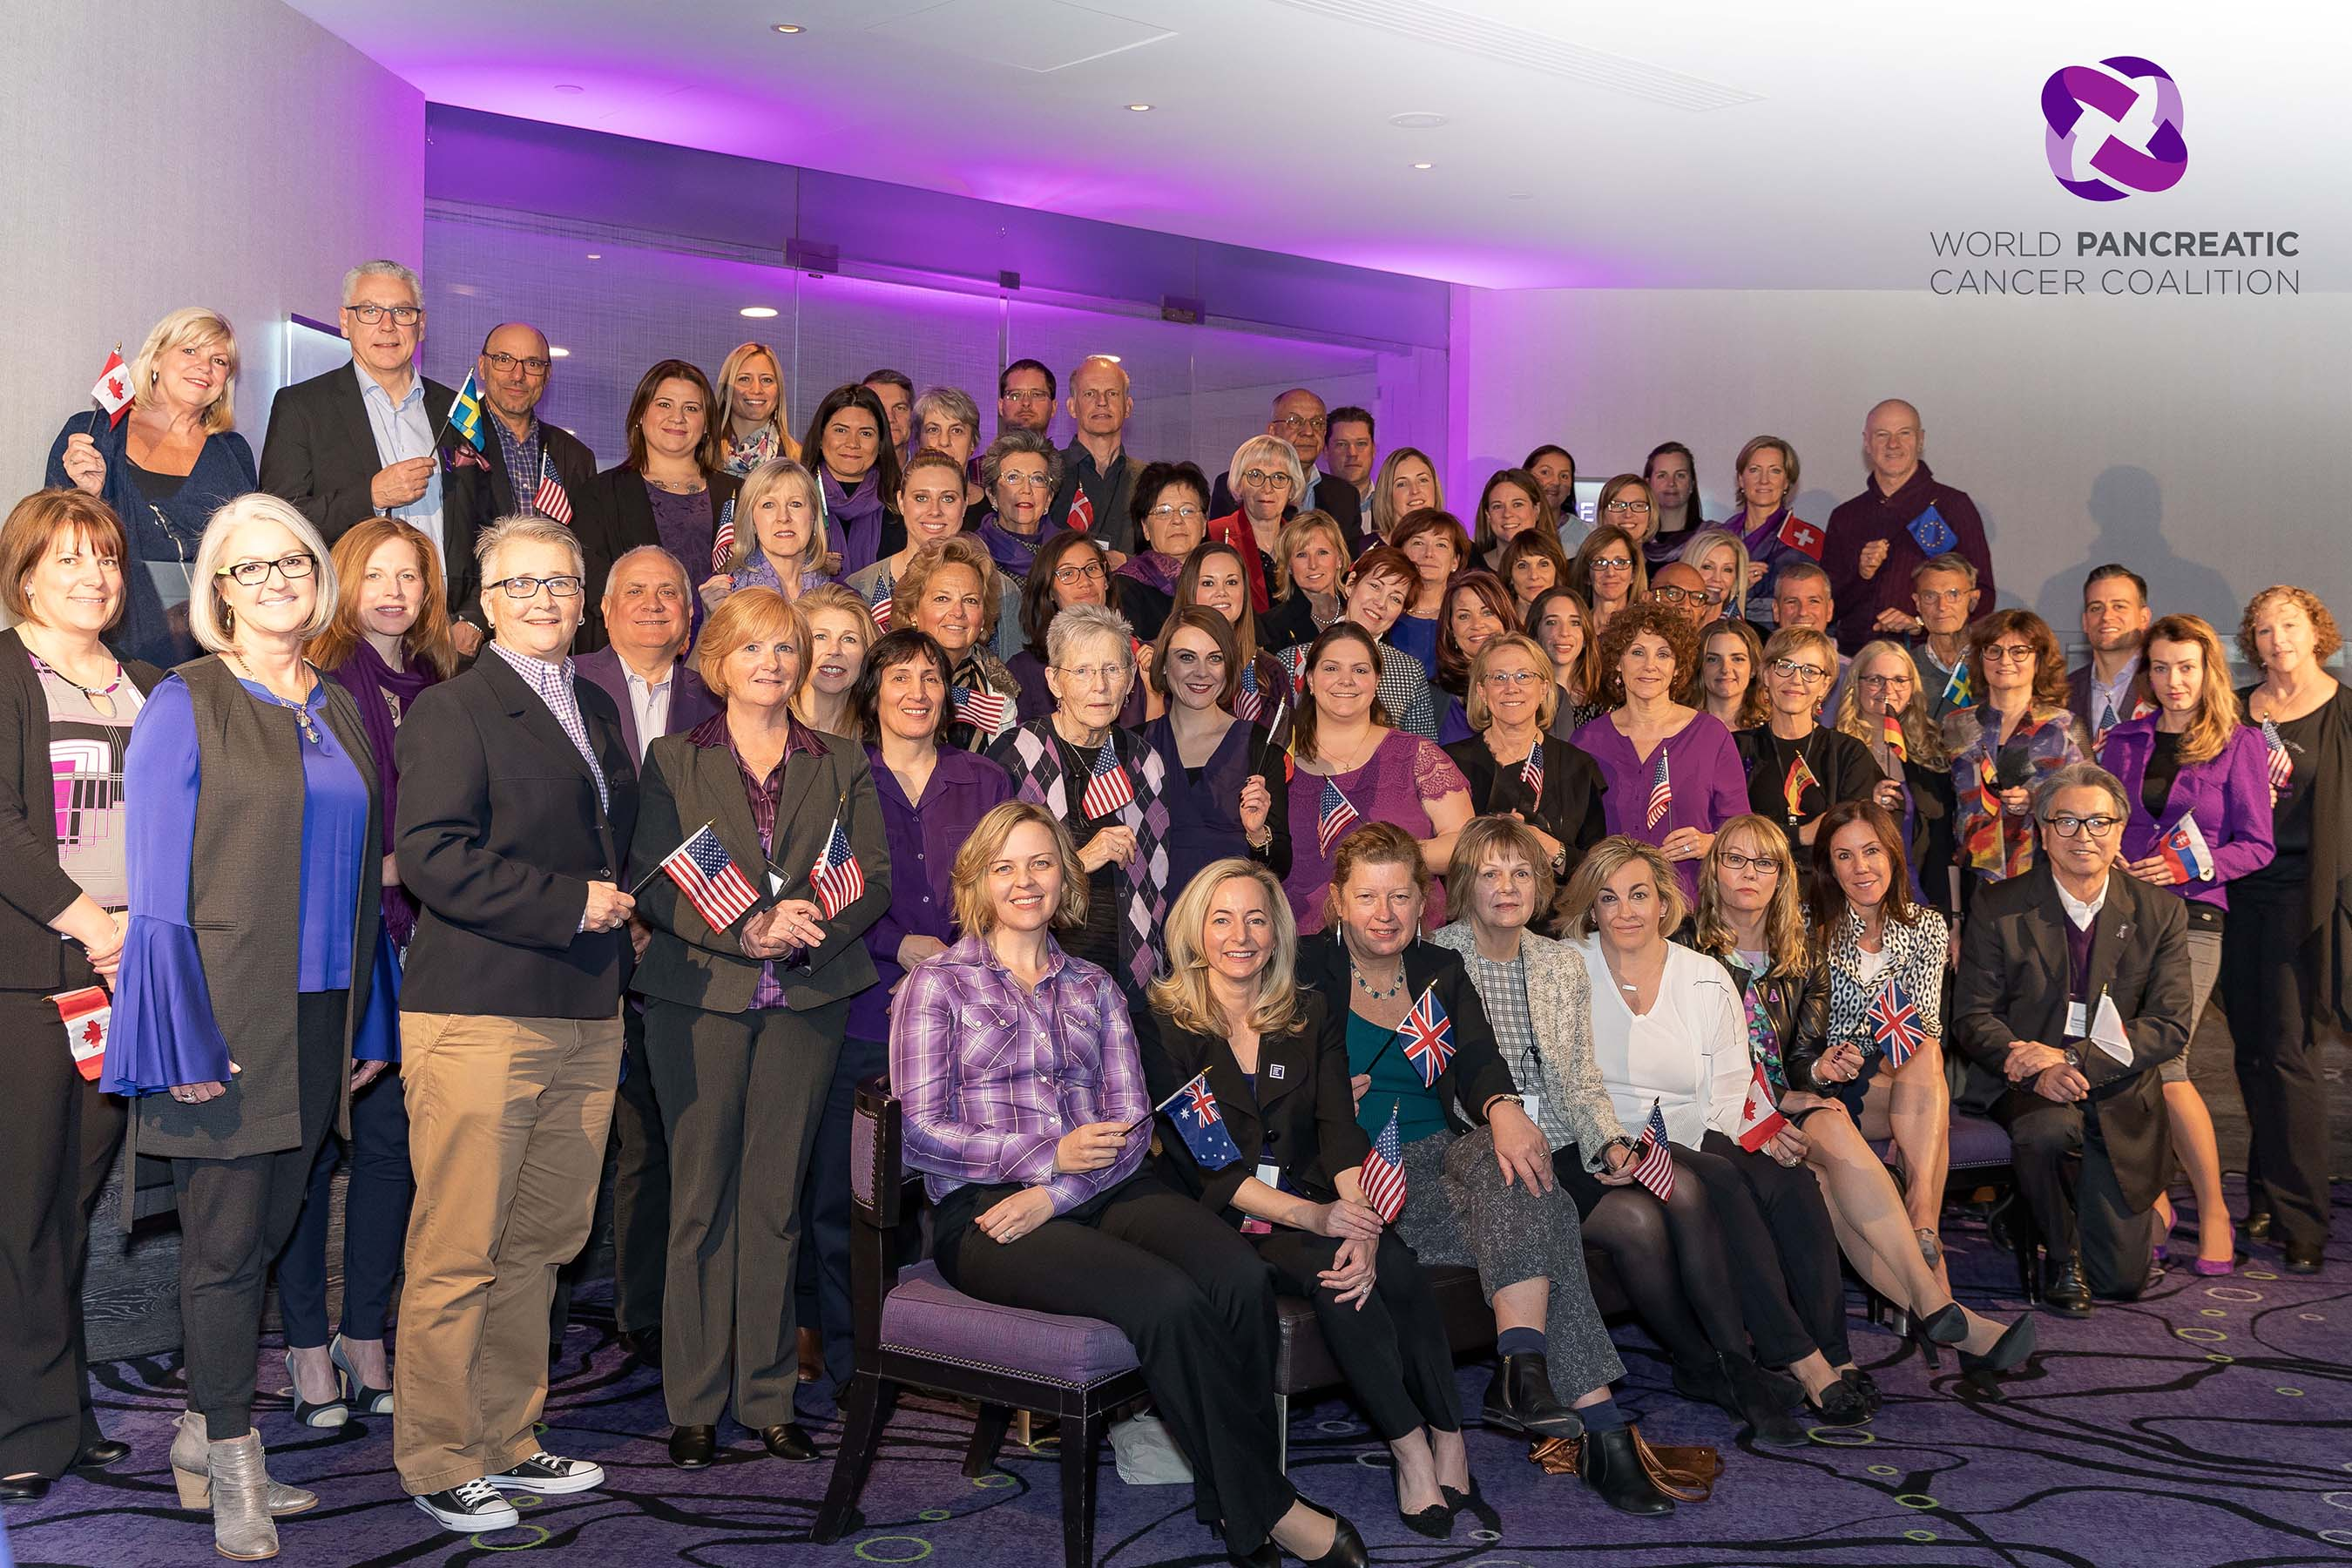 Members of the World Pancreatic Cancer Coalition unite from more than 60 organizations from 27 countries and six continents to raise awareness and inspire action on World Pancreatic Cancer Day